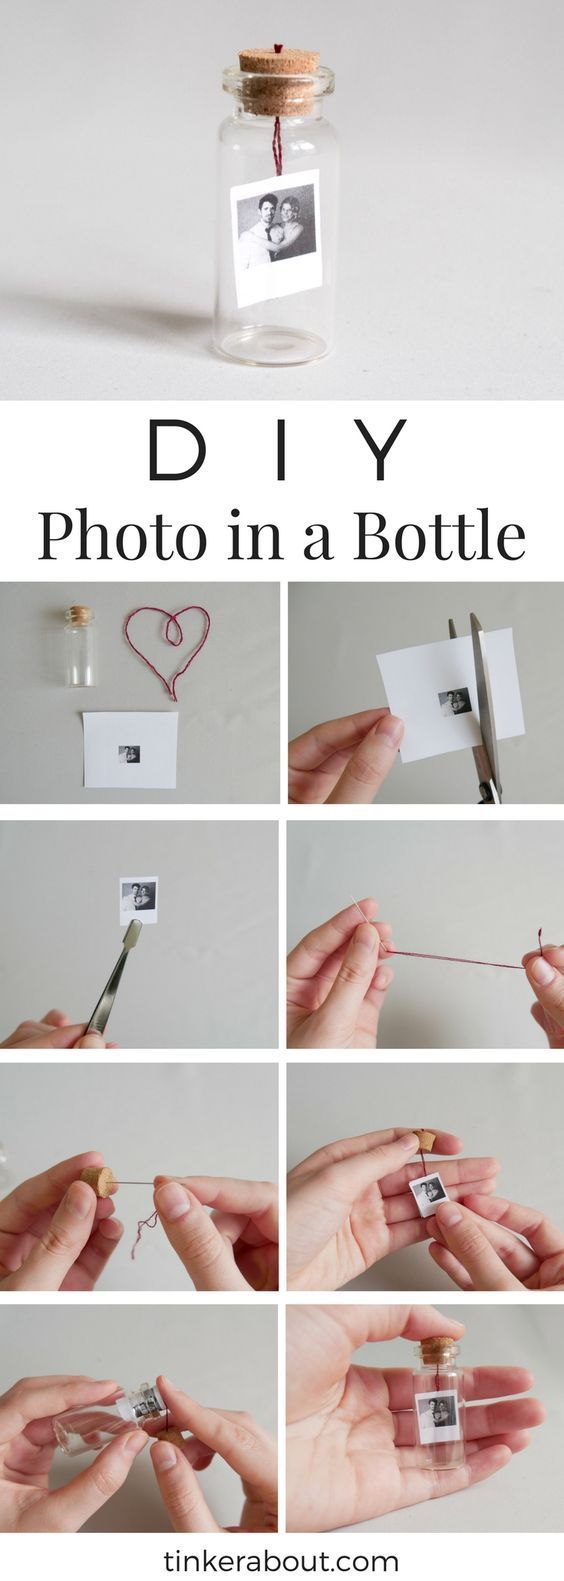 DIY Tiny Photo/Message in a Bottle as Valentine's Day Gift Idea